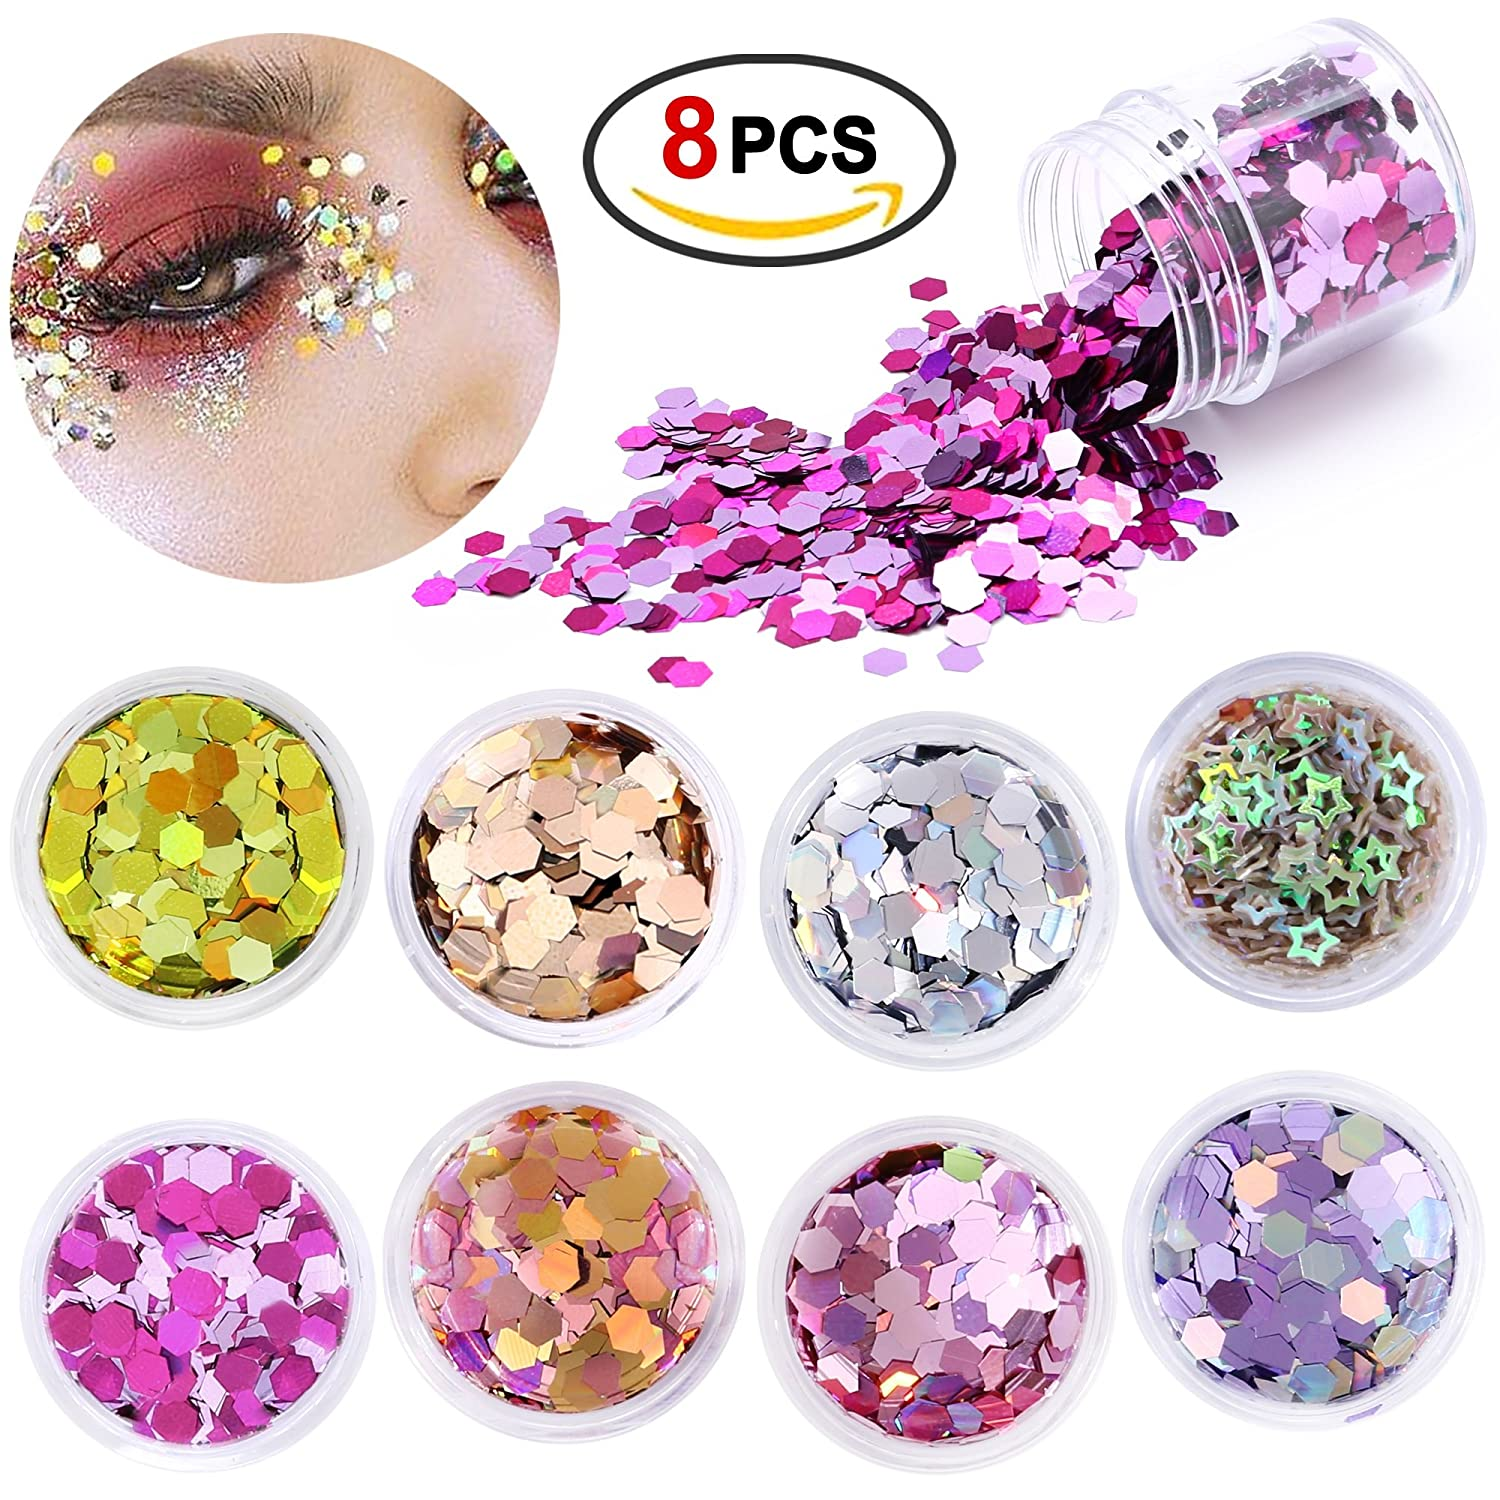 Konsait Chunky Cosmetic Glitter Shimmer Holographic Body Glitter Powder Sequins Hexagon Paillettes Flaky Decoration for Festival Rave Costume Face Body Nail Hair Eyes Lips Unicorn mermaid Makeup(8pcs)